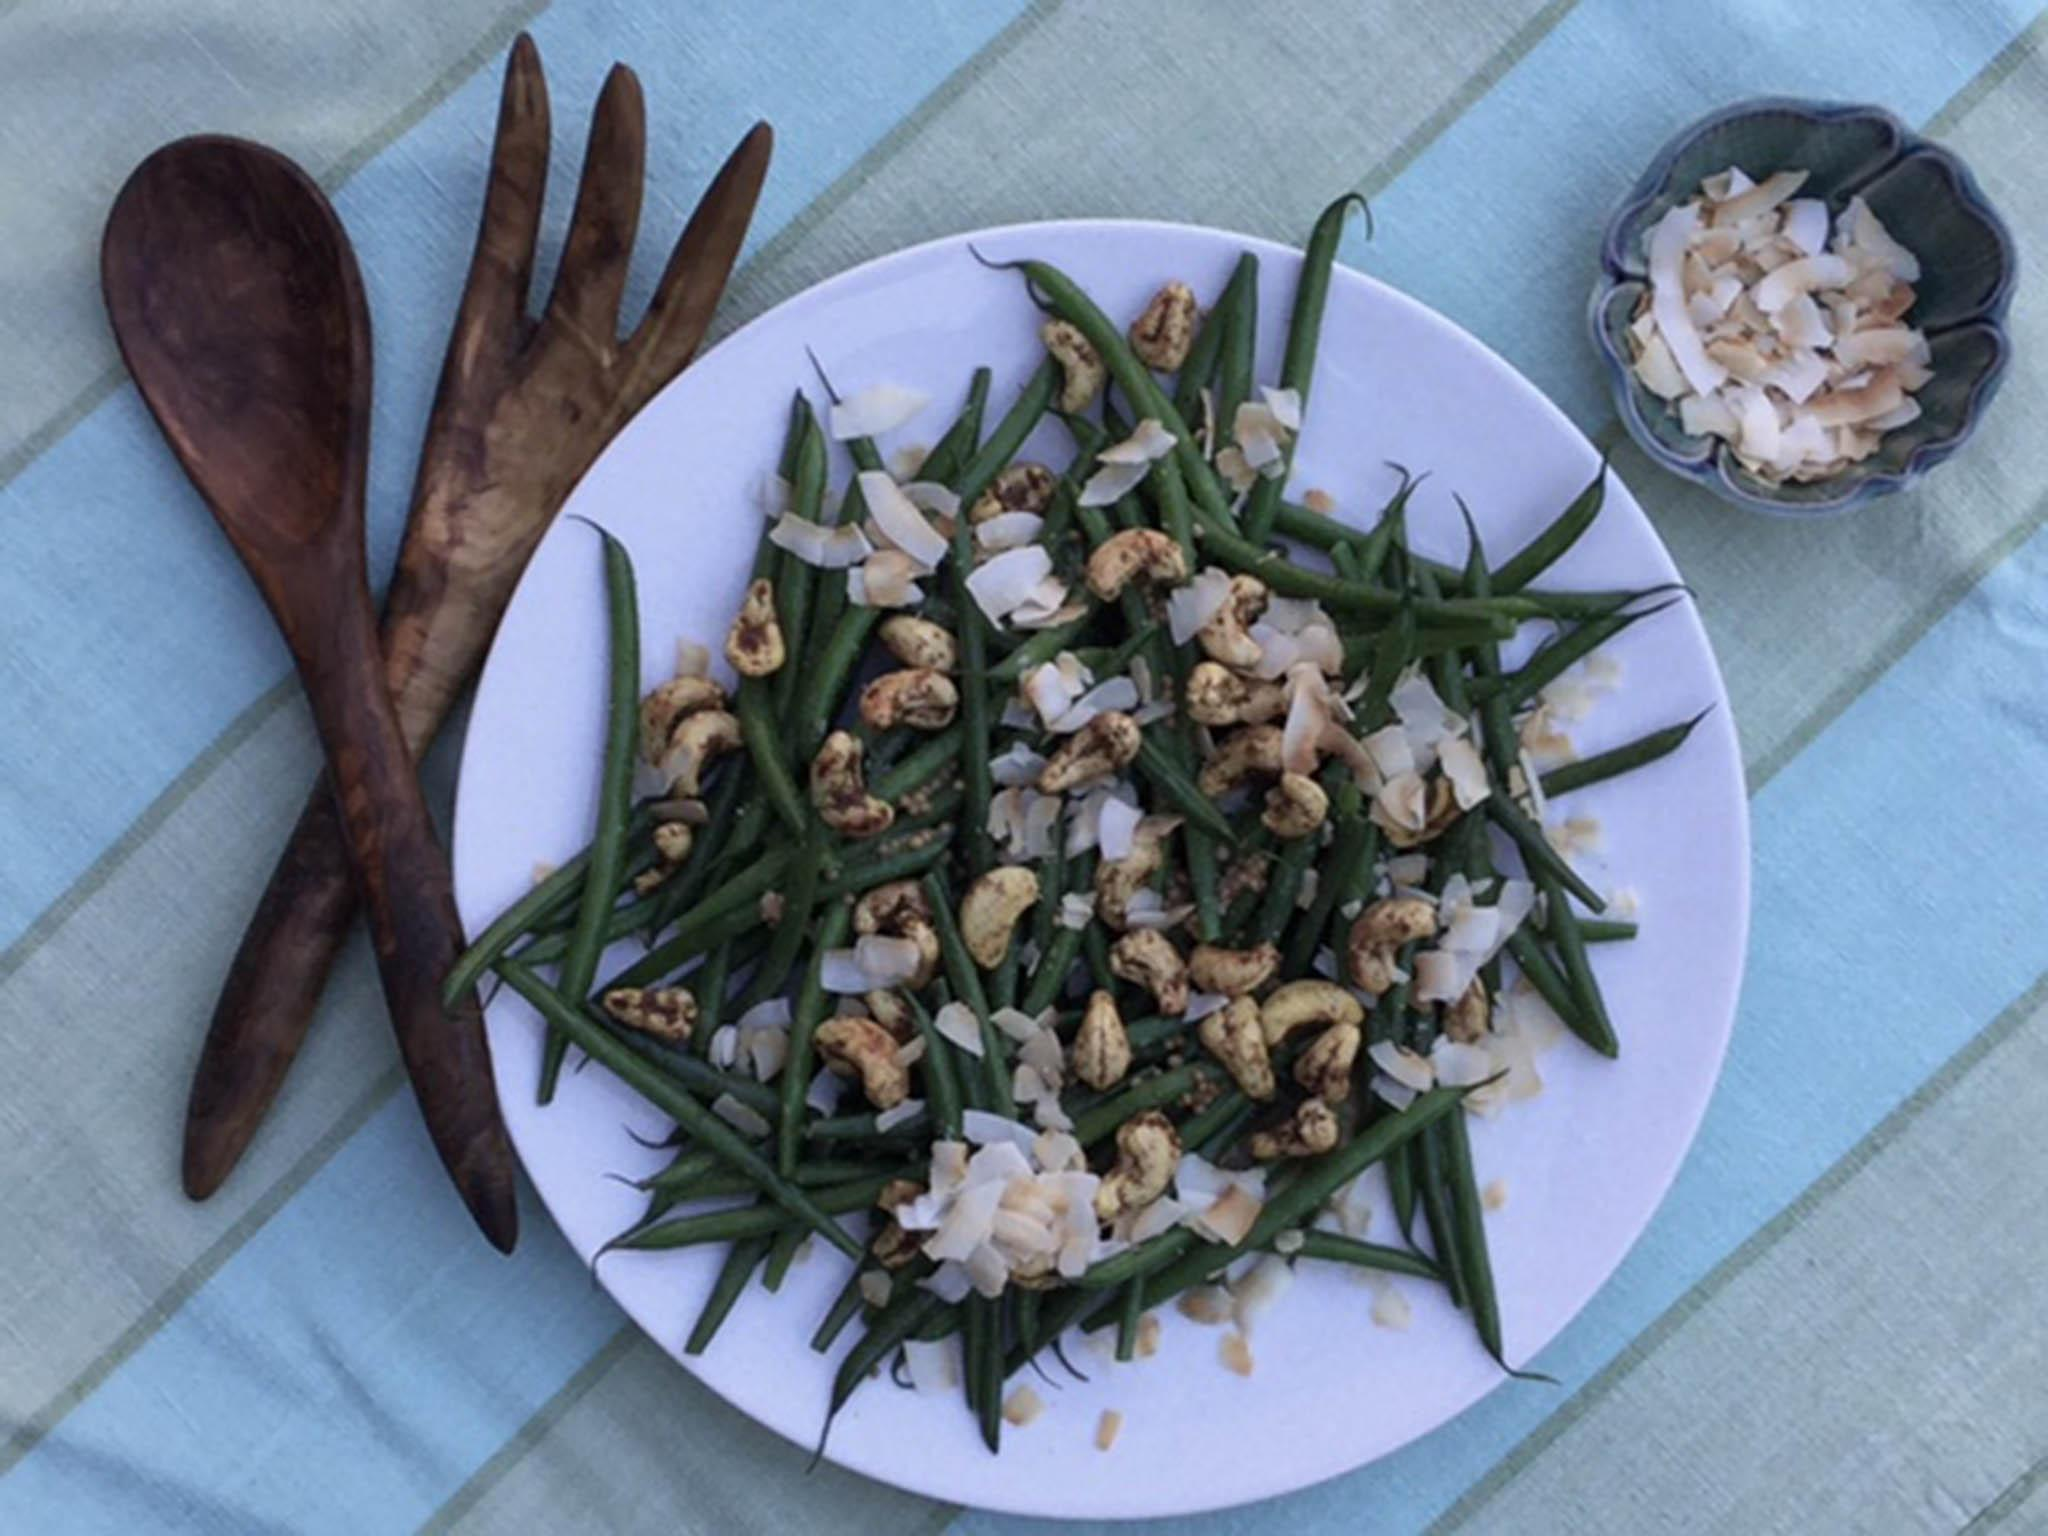 National Curry Week 2016: Green bean, coconut and curry cashews side dish | The Independent